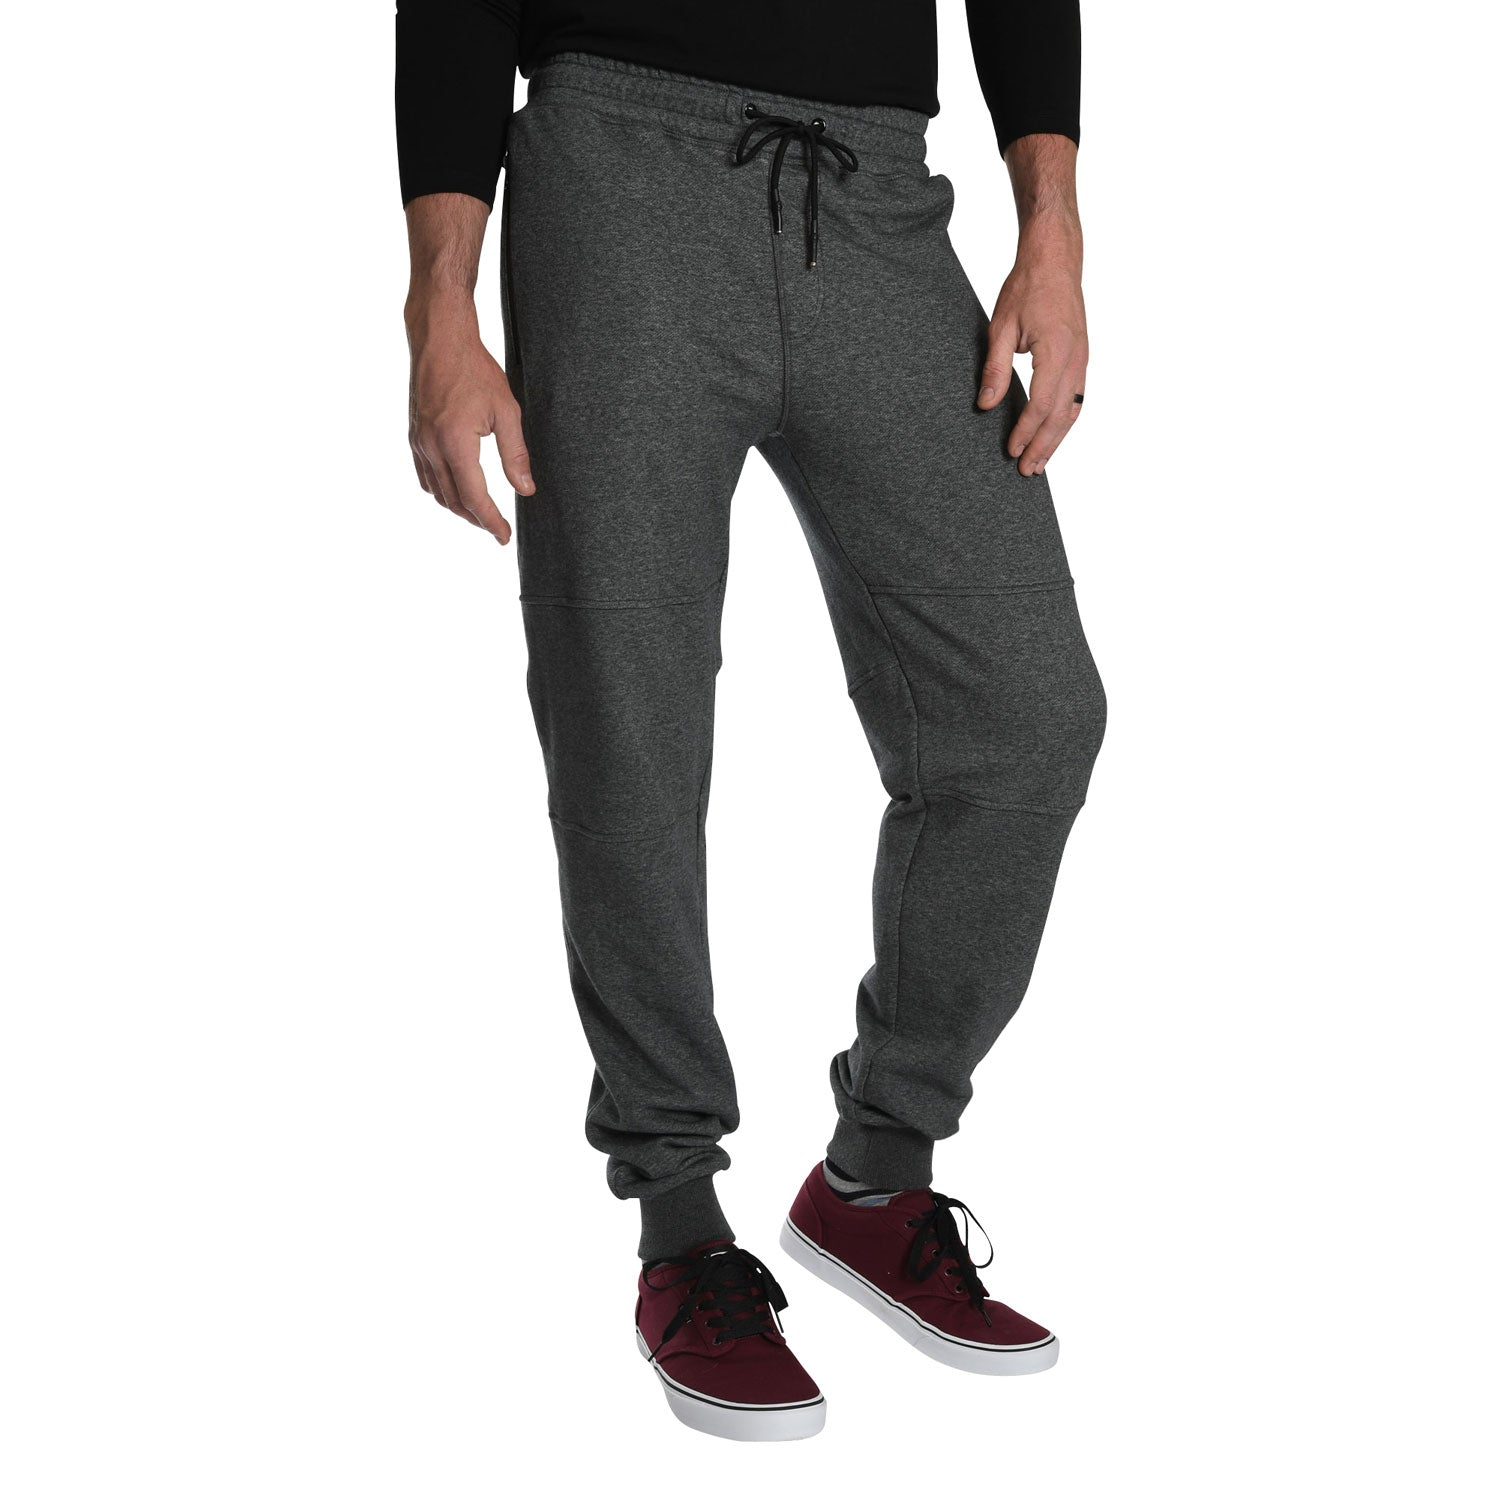 highly coveted range of fashionable patterns rational construction Tall Men's French Terry Jogger Sweats in Charcoal Mix -